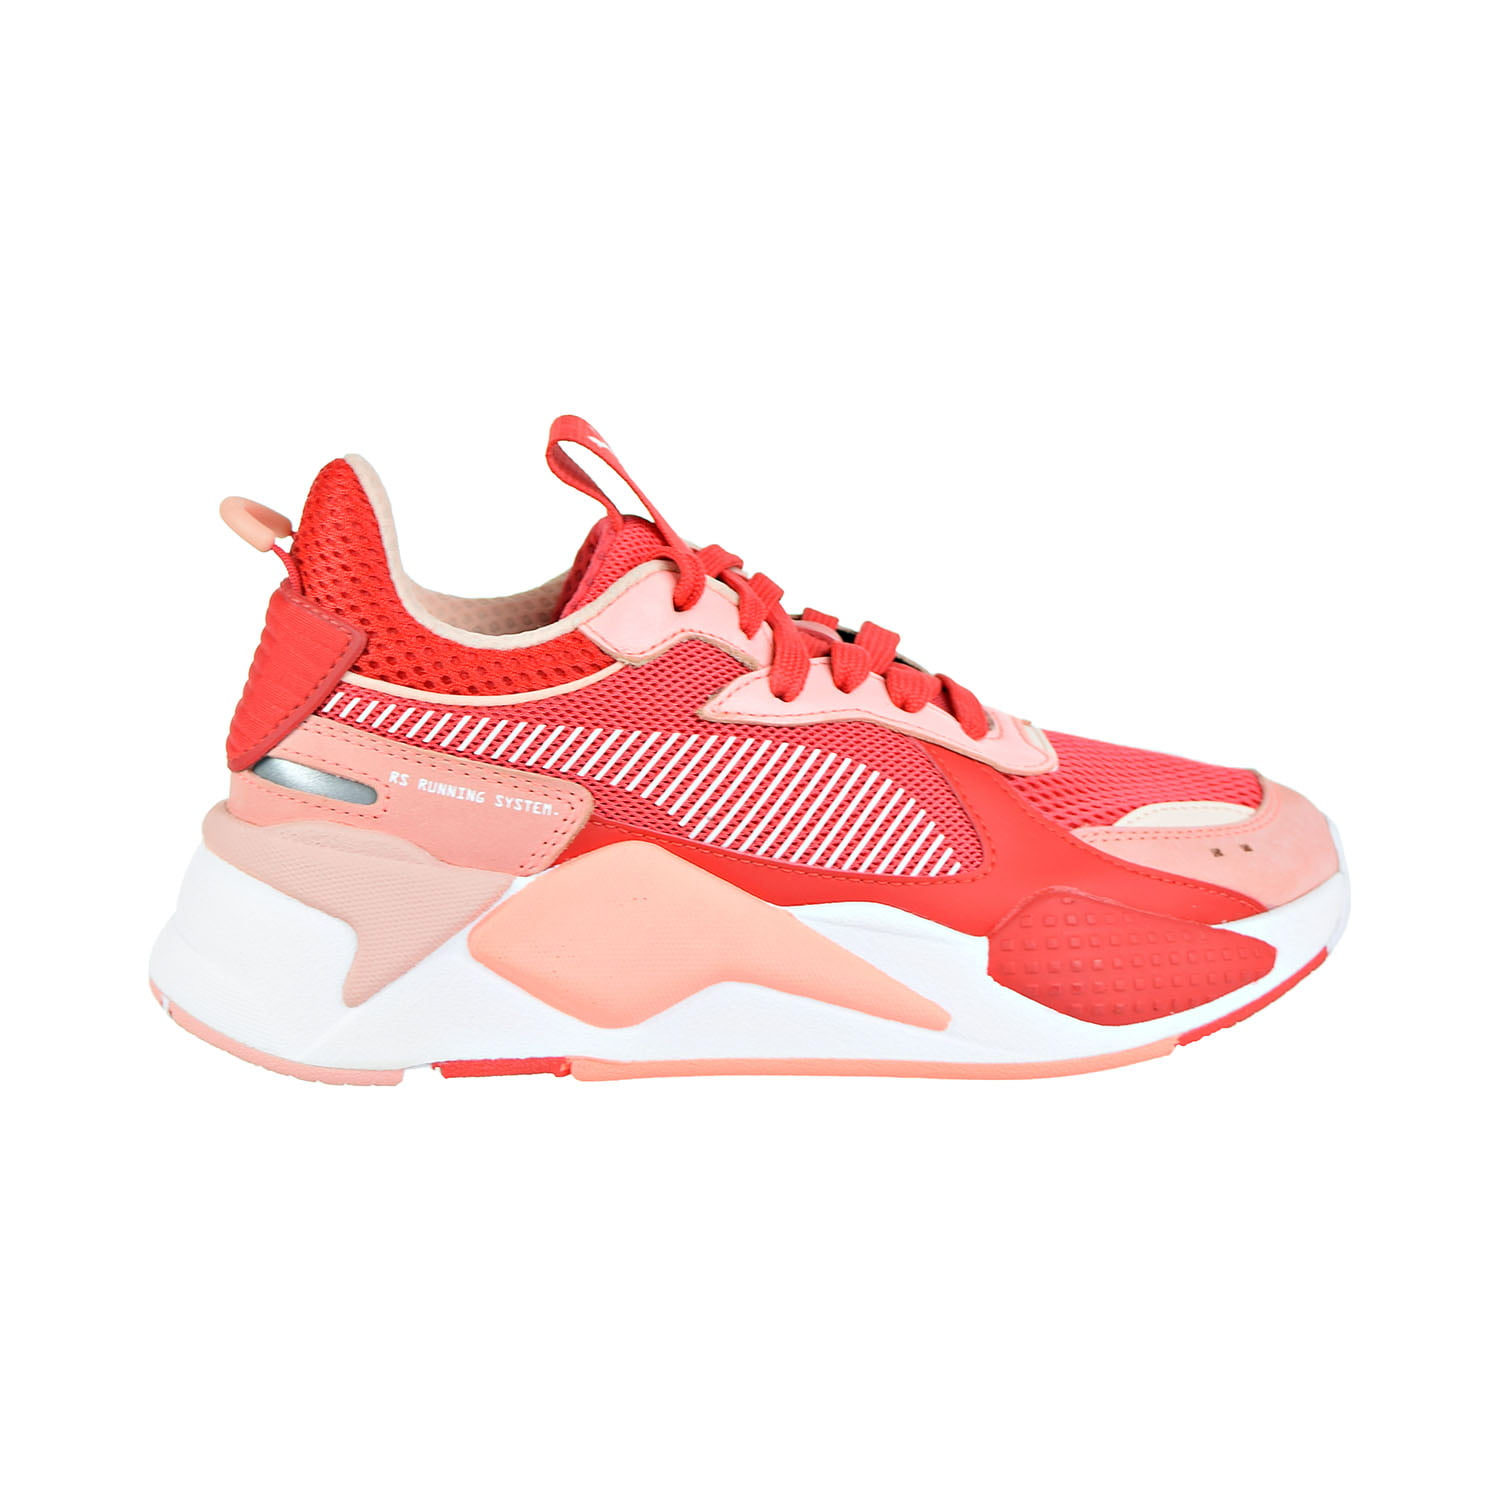 Puma RS-X Toys Women's Sneakers Bright Peach/High Risk Red 370750-07 -  Walmart.com